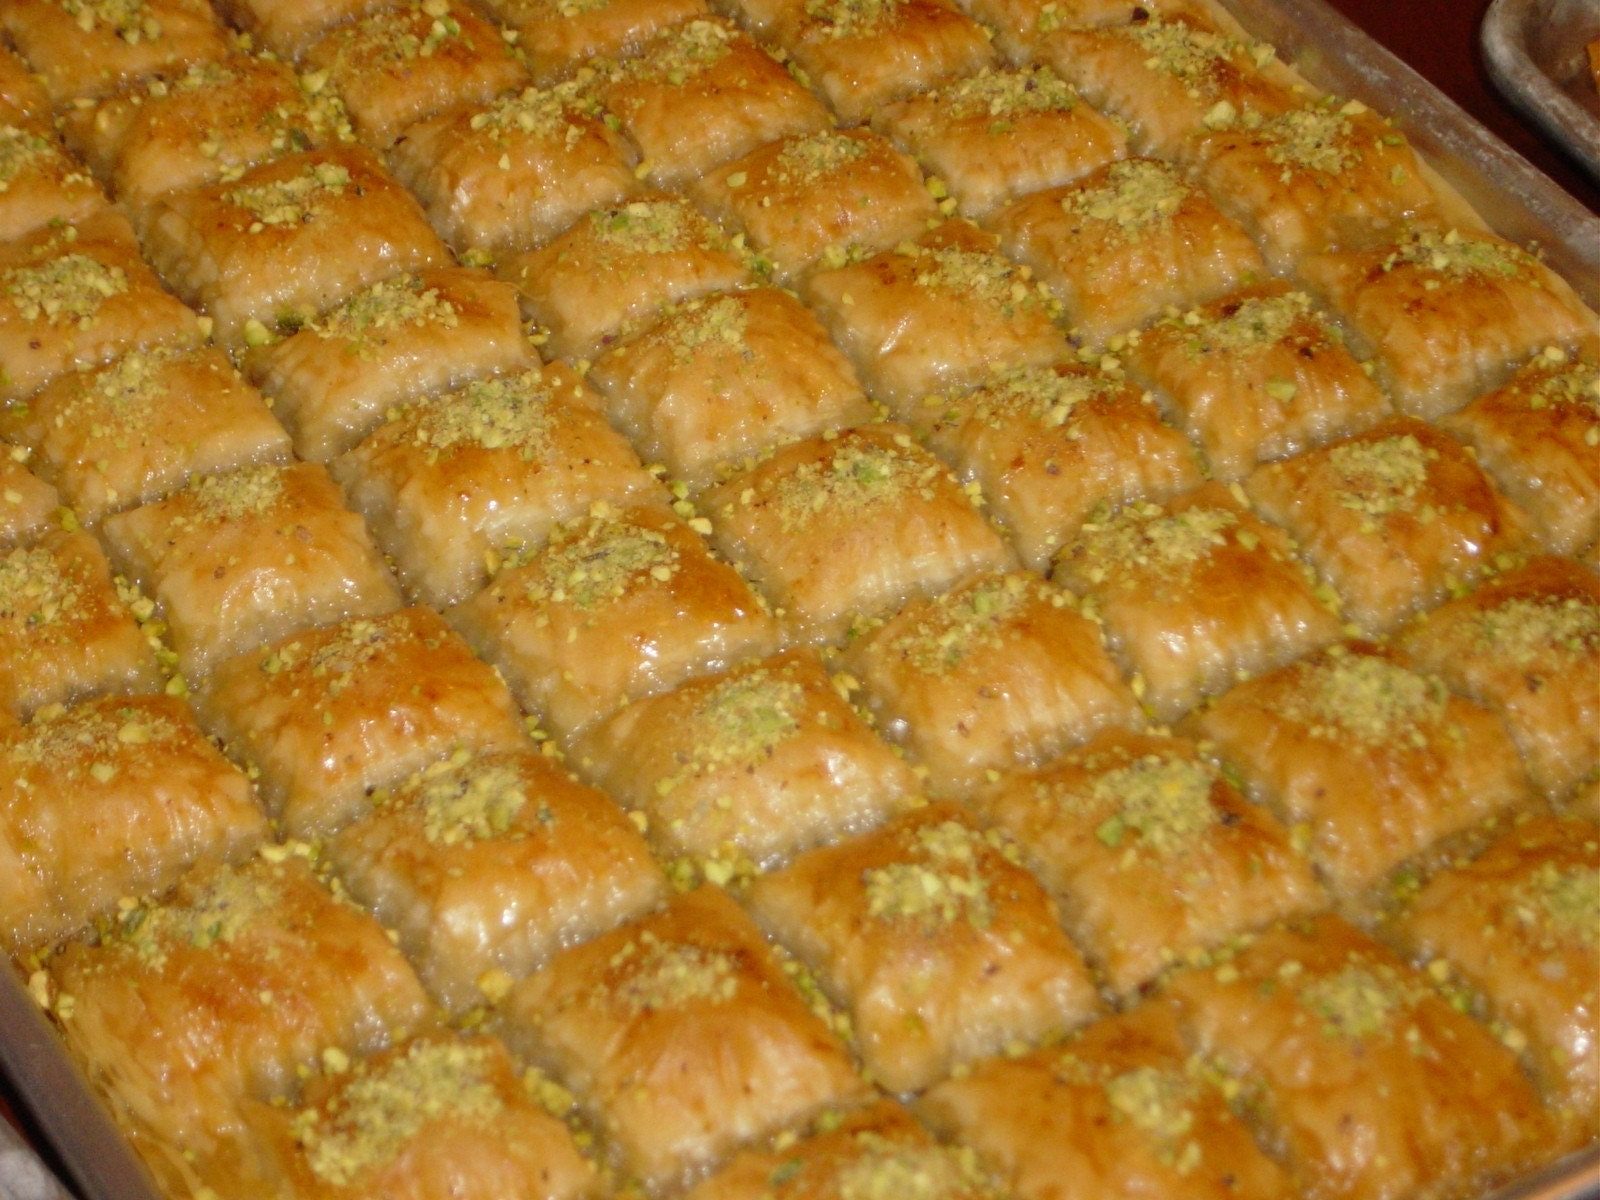 Delicious Turkish Baklava by TurkishBaklava on Etsy